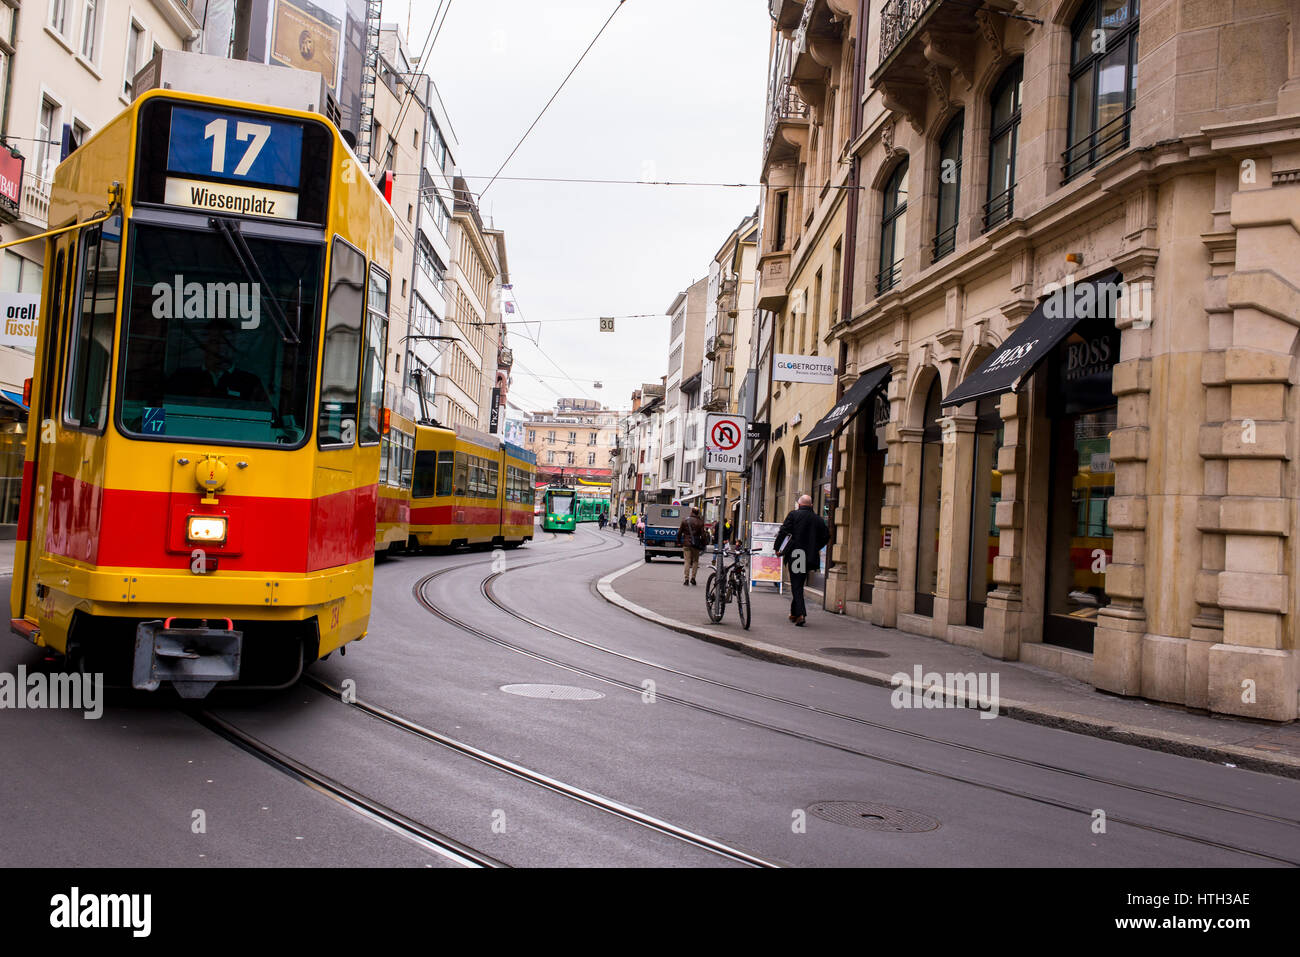 Basel, Switzerland - March 2017: Yellow tram in street of Basel city center. Basel's green and yellow trams - Stock Image